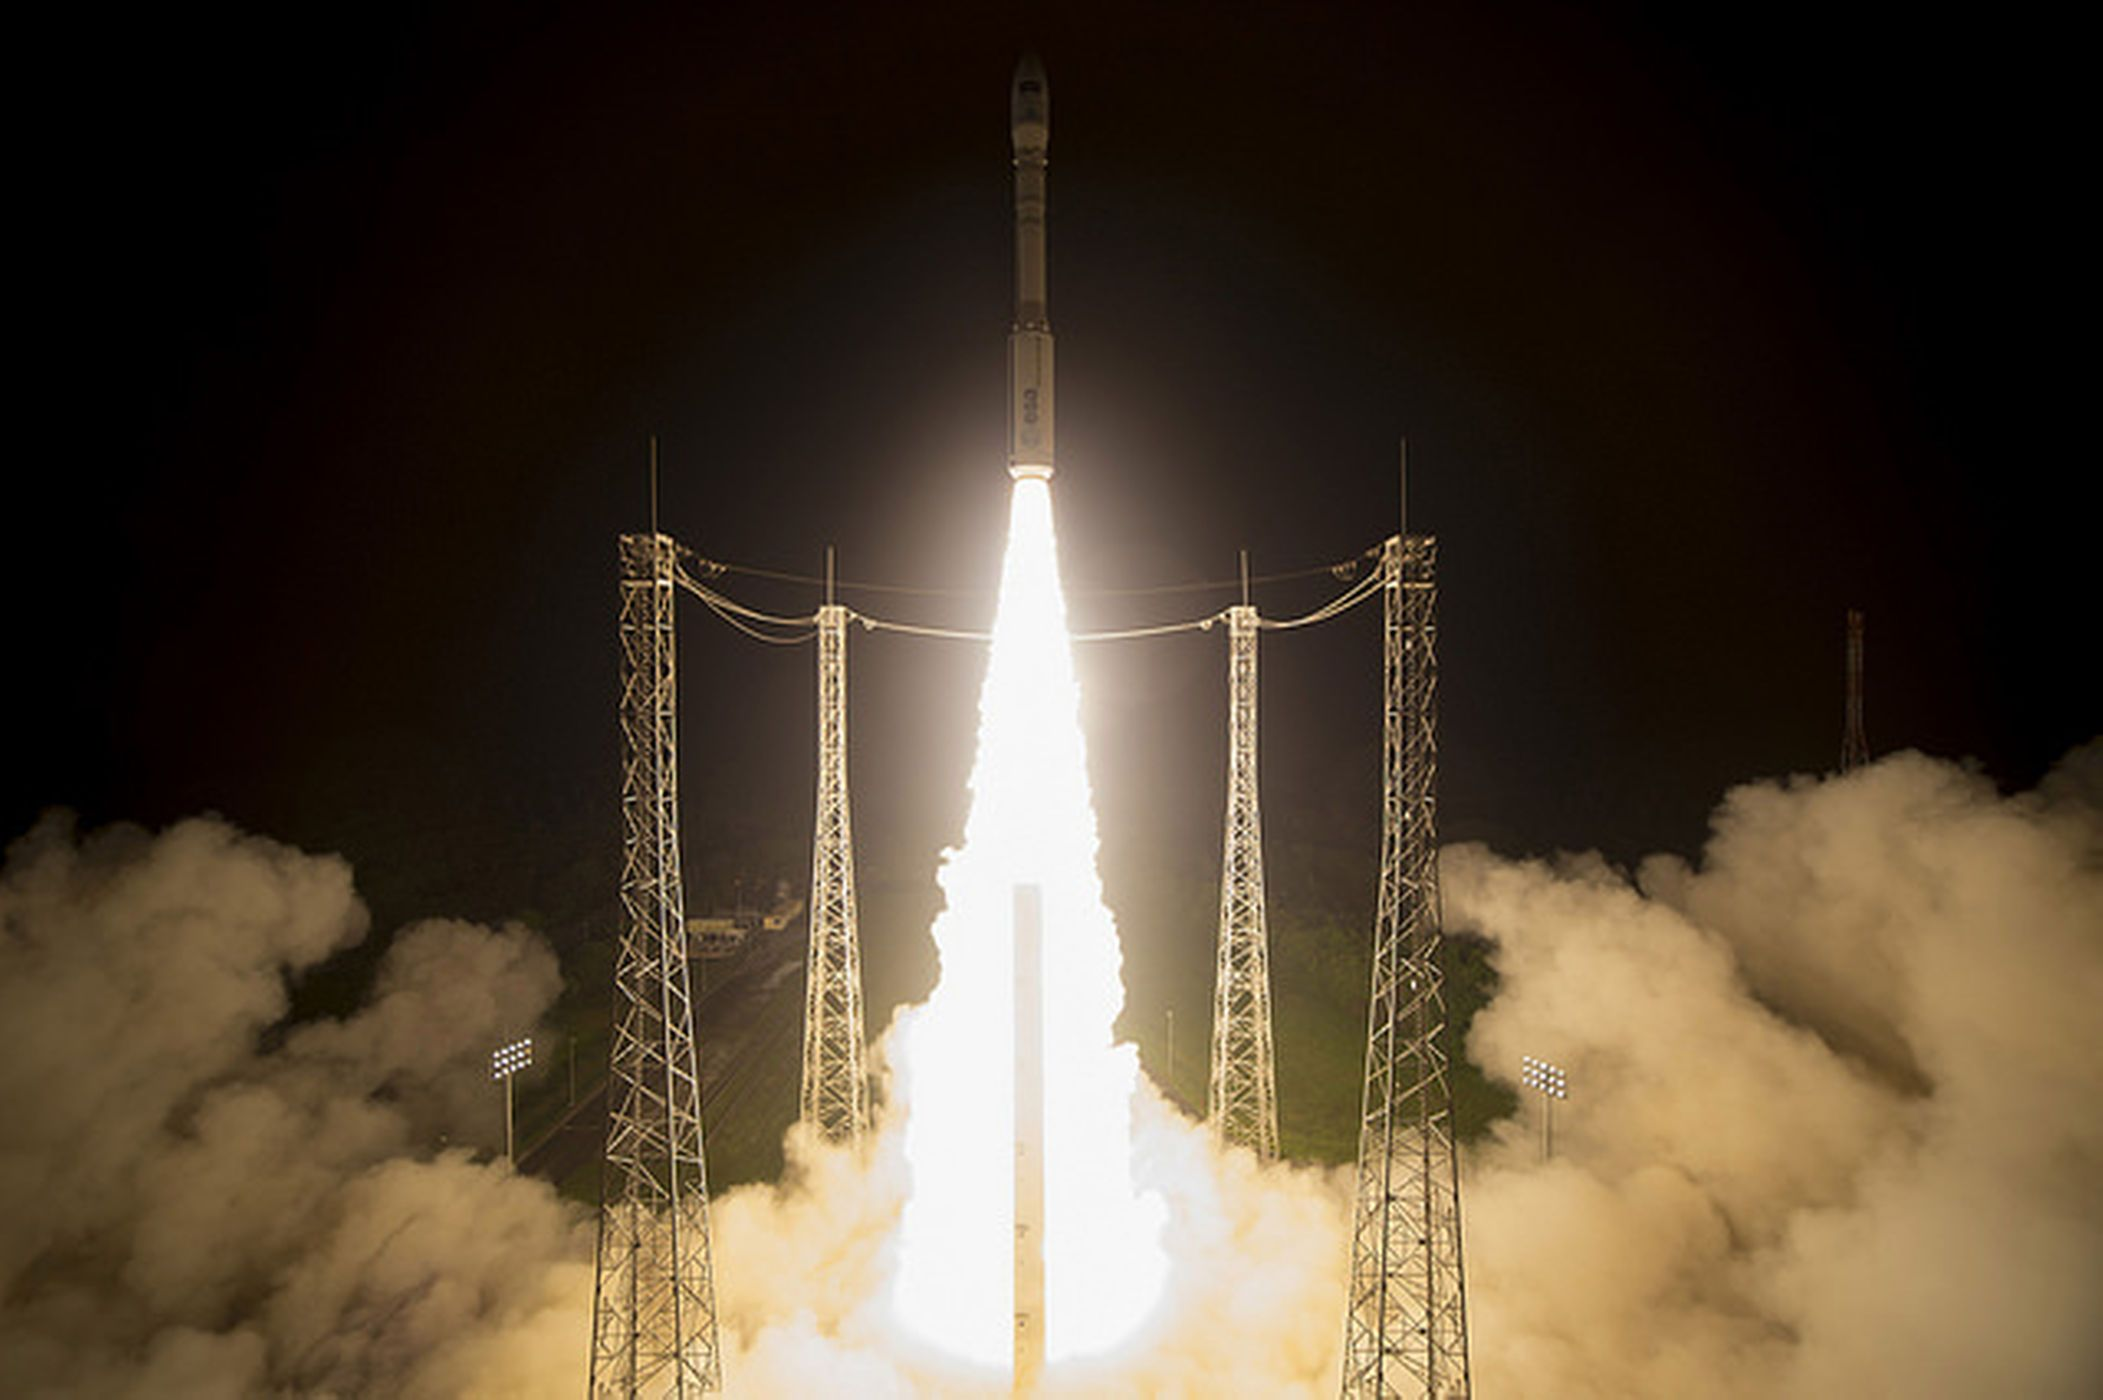 A Vega rocket carrying the European Space Agency's Sentinel-2B satellite blasted off from Korou, French Guiana yesterday at 8:49 p.m. EST (10:49 p.m. local time) in a gorgeous nighttime launch.